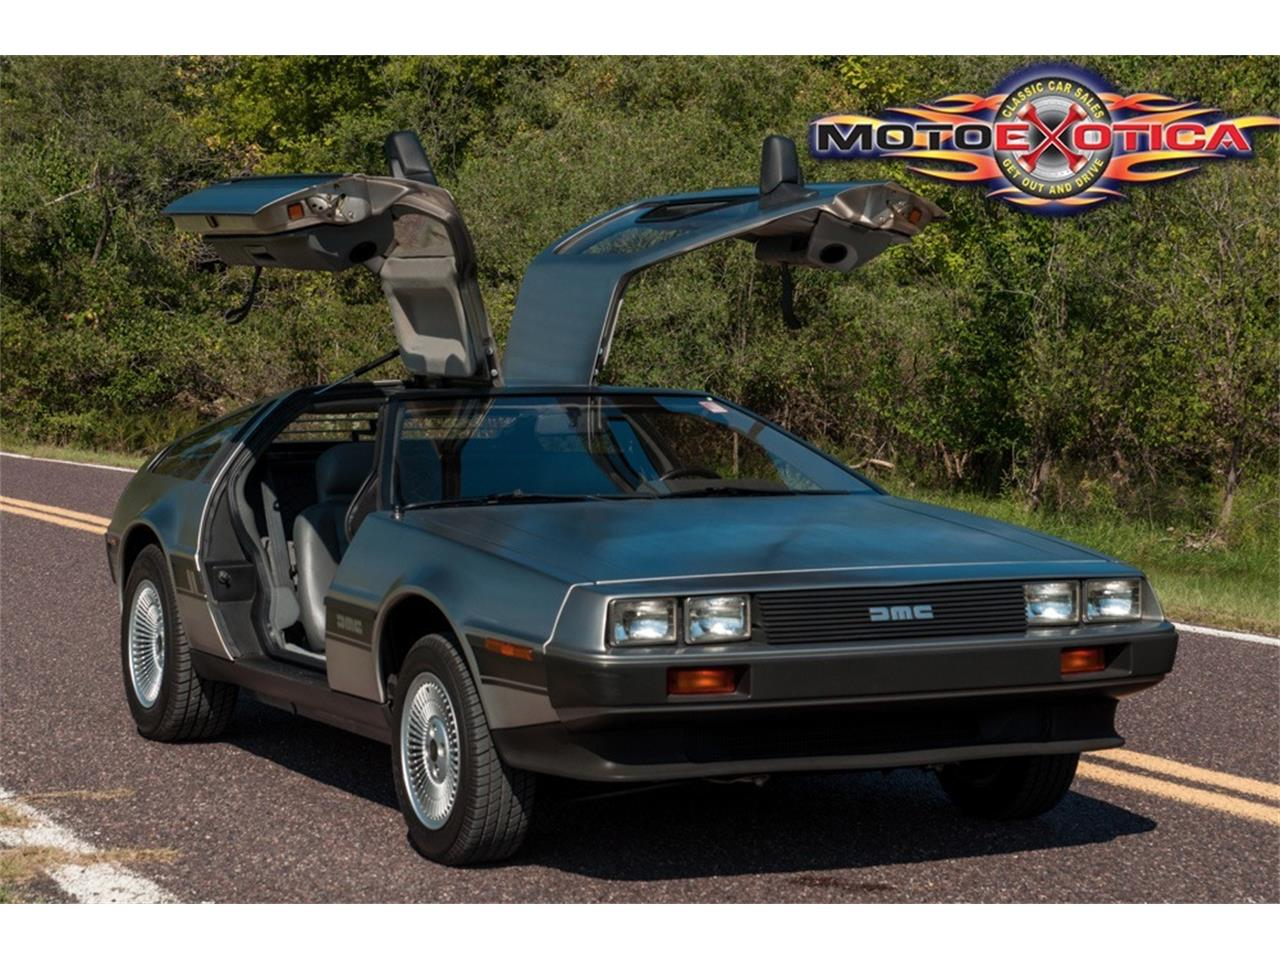 Large Picture of '81 DMC-12 - $73,500.00 Offered by MotoeXotica Classic Cars - JPXR